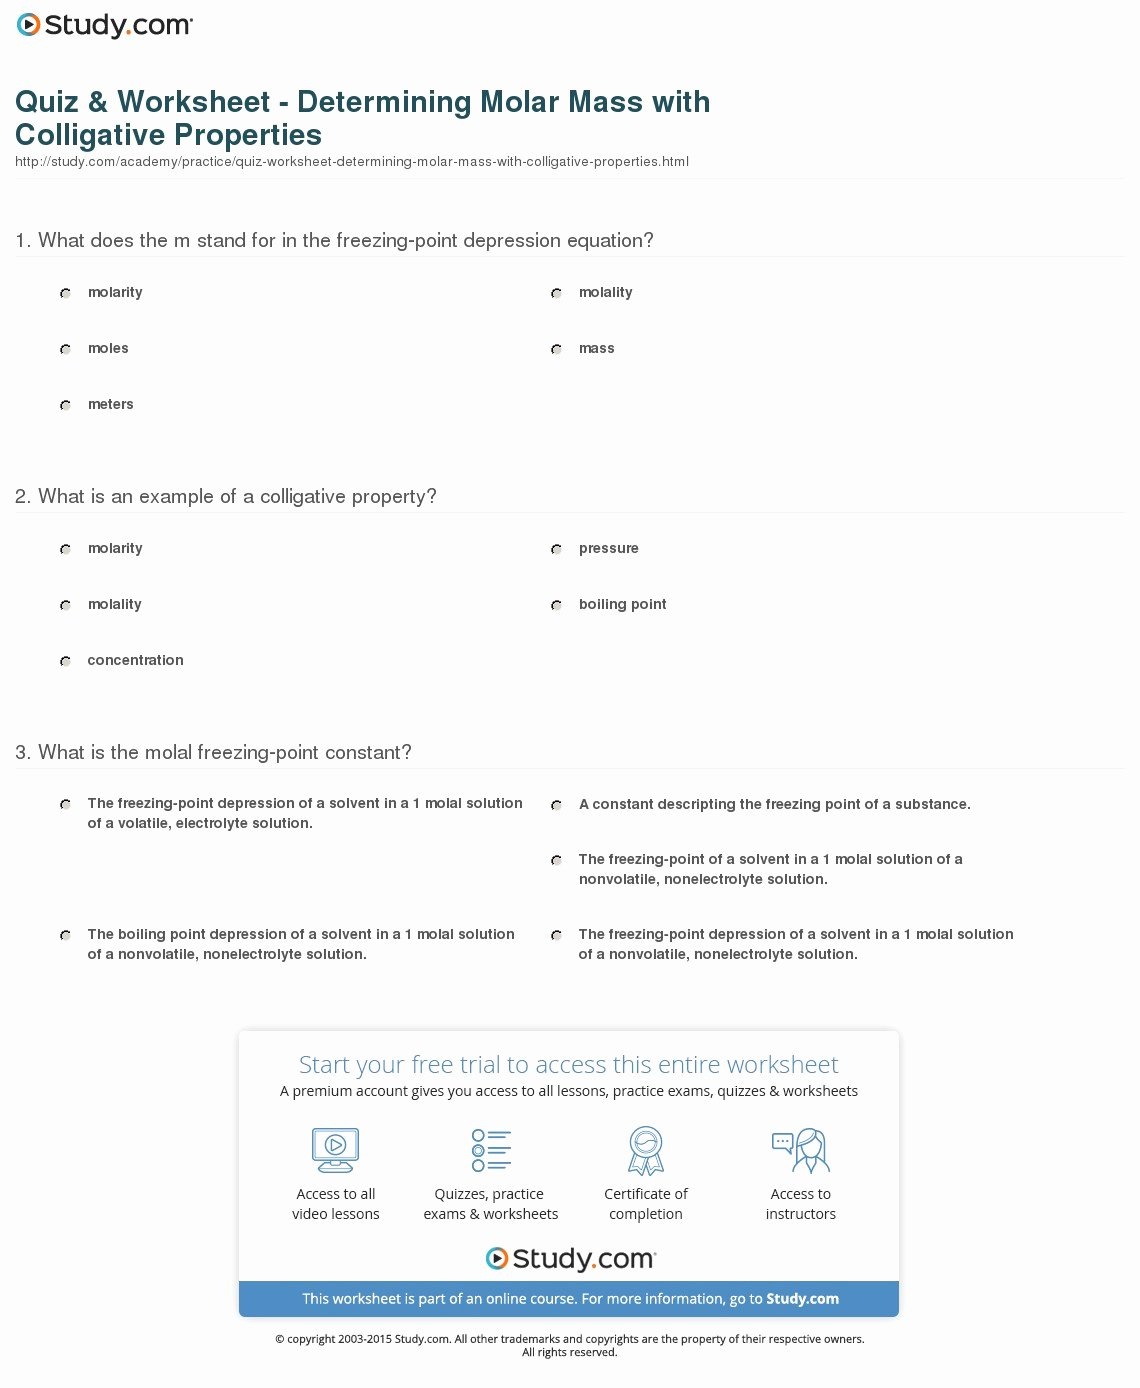 Molar Mass Worksheet Answer Key Unique Quiz & Worksheet Determining Molar Mass with Colligative